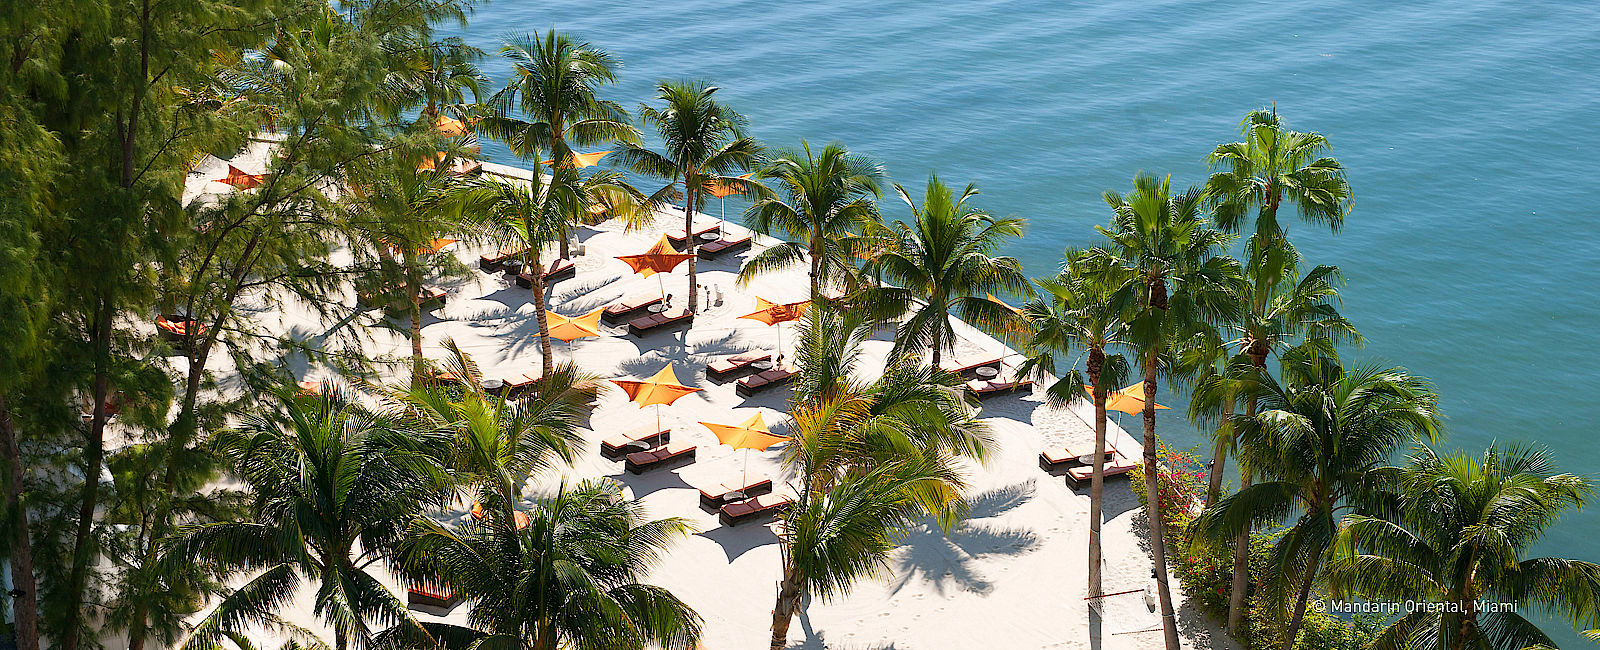 Miami - Connoisseur Circle Destinationen im Check